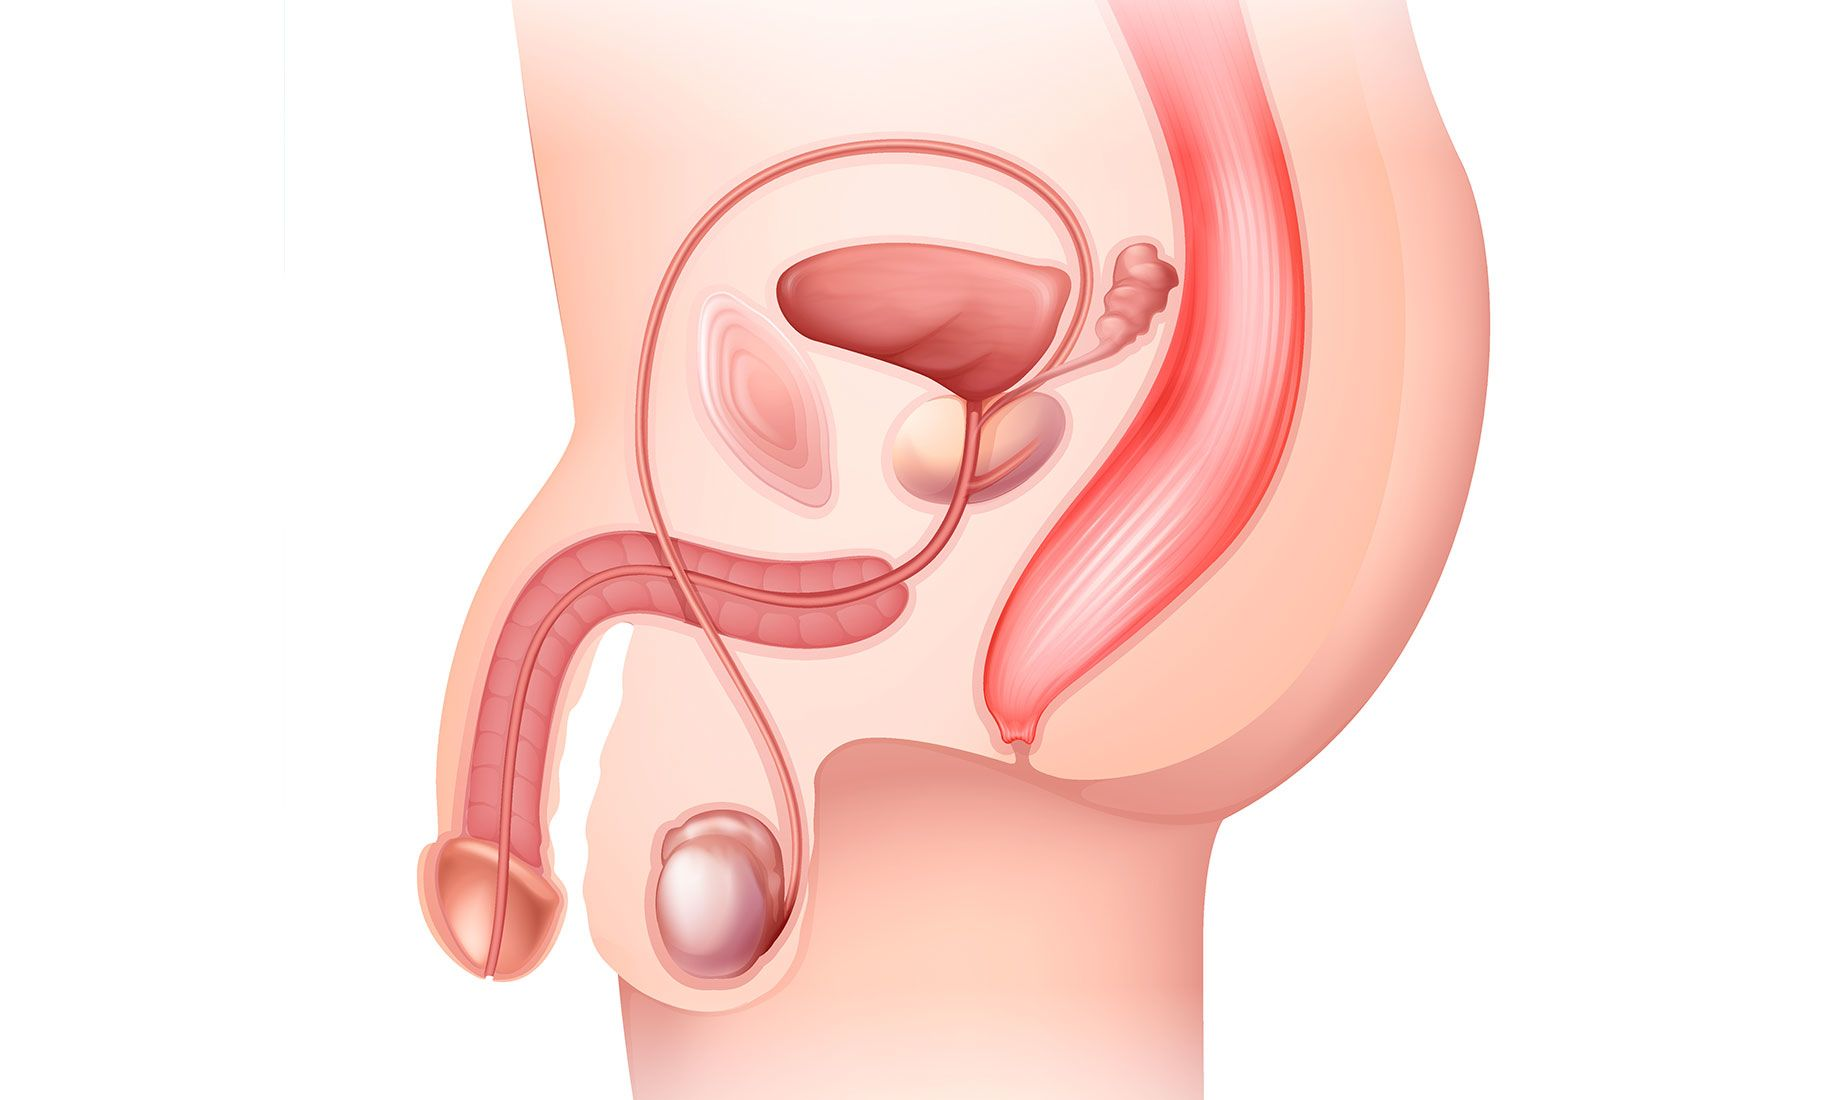 Side view rendering of male reproductive system to assess infertility